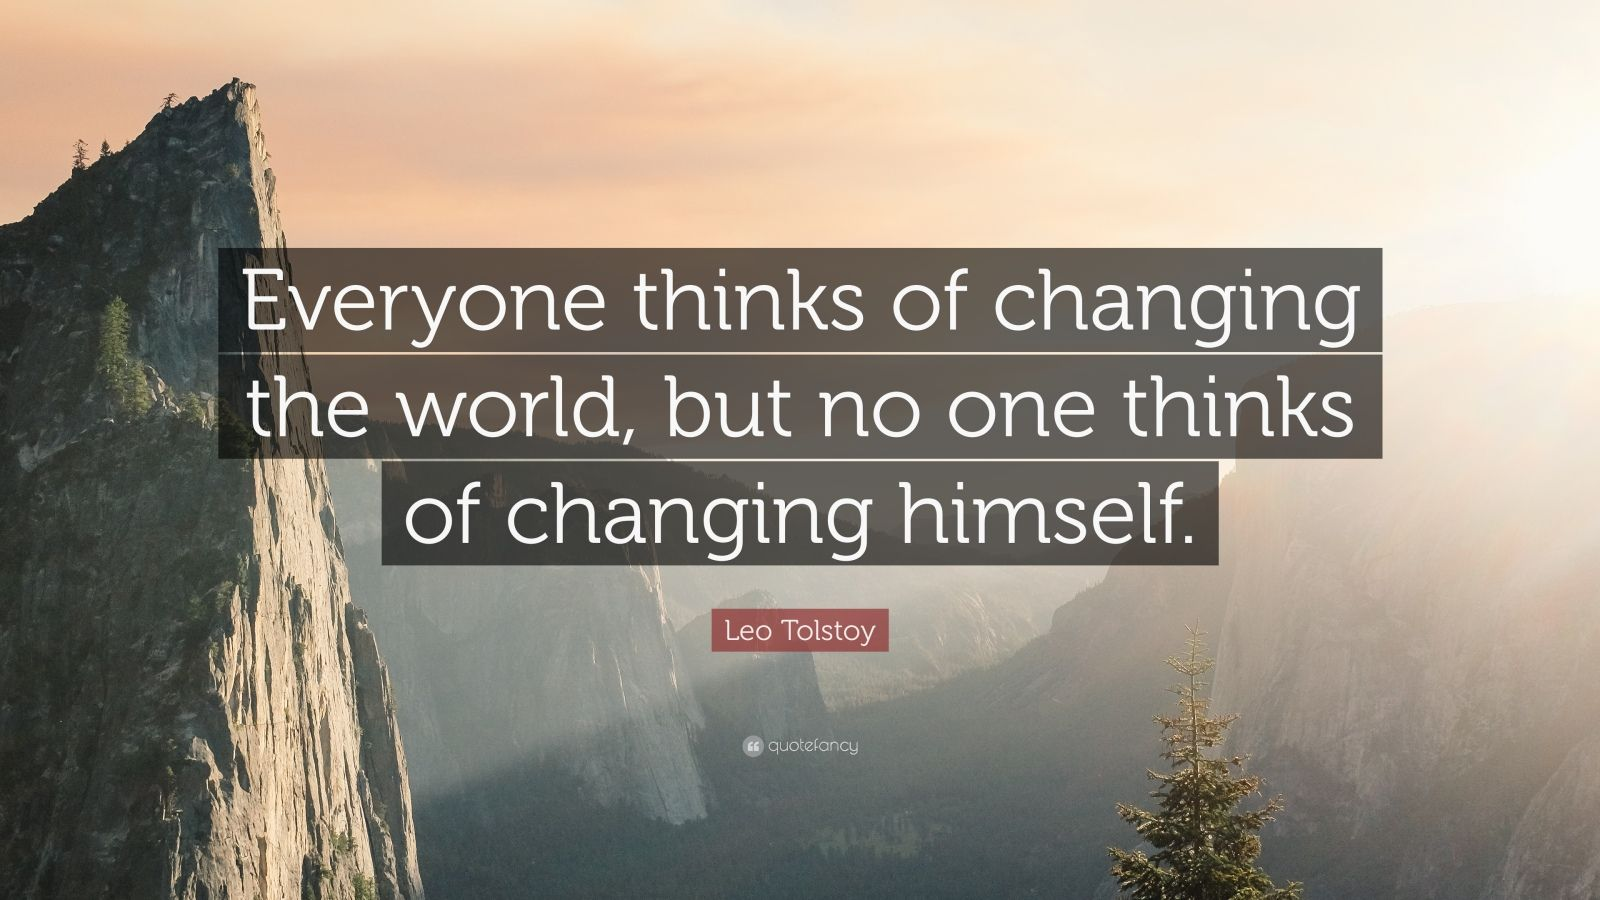 Dalai Lama Quotes Wallpapers Leo Tolstoy Quote Everyone Thinks Of Changing The World